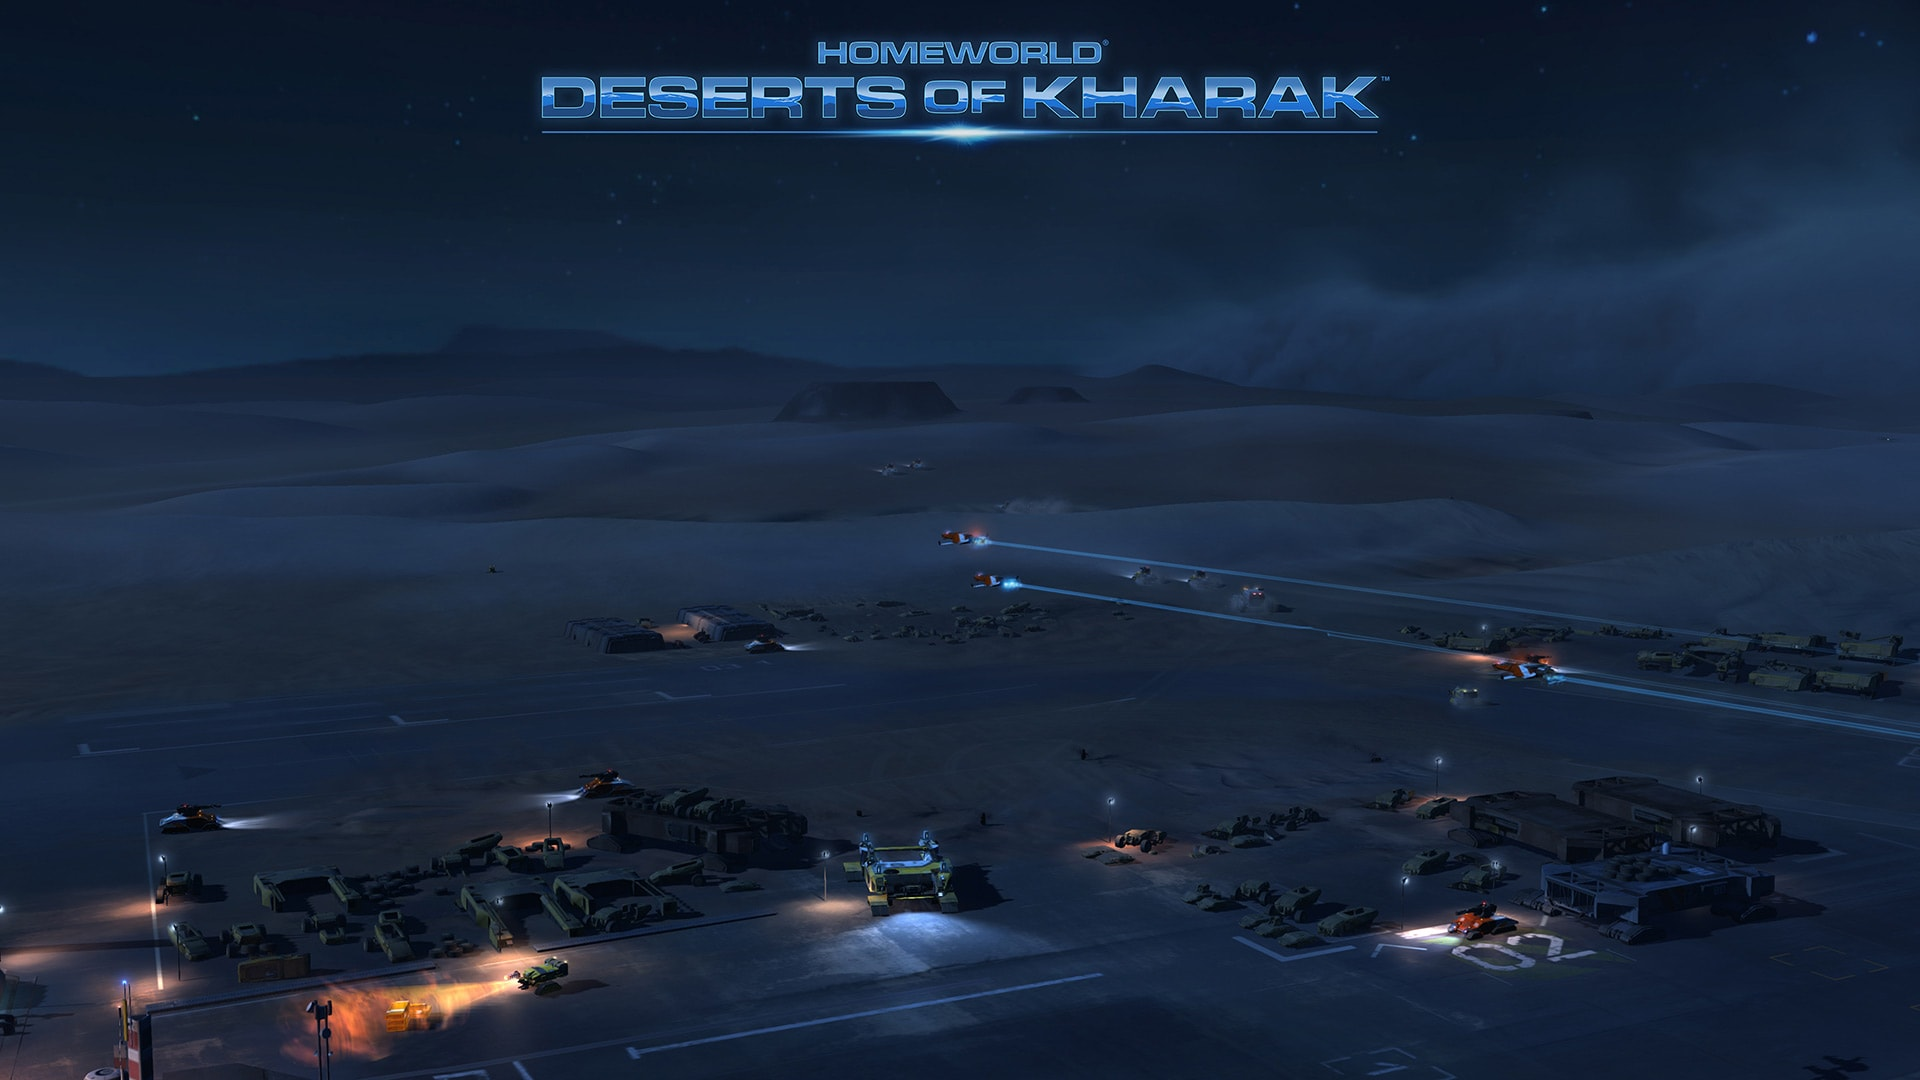 Homeworld: Deserts of Kharak HQ wallpapers